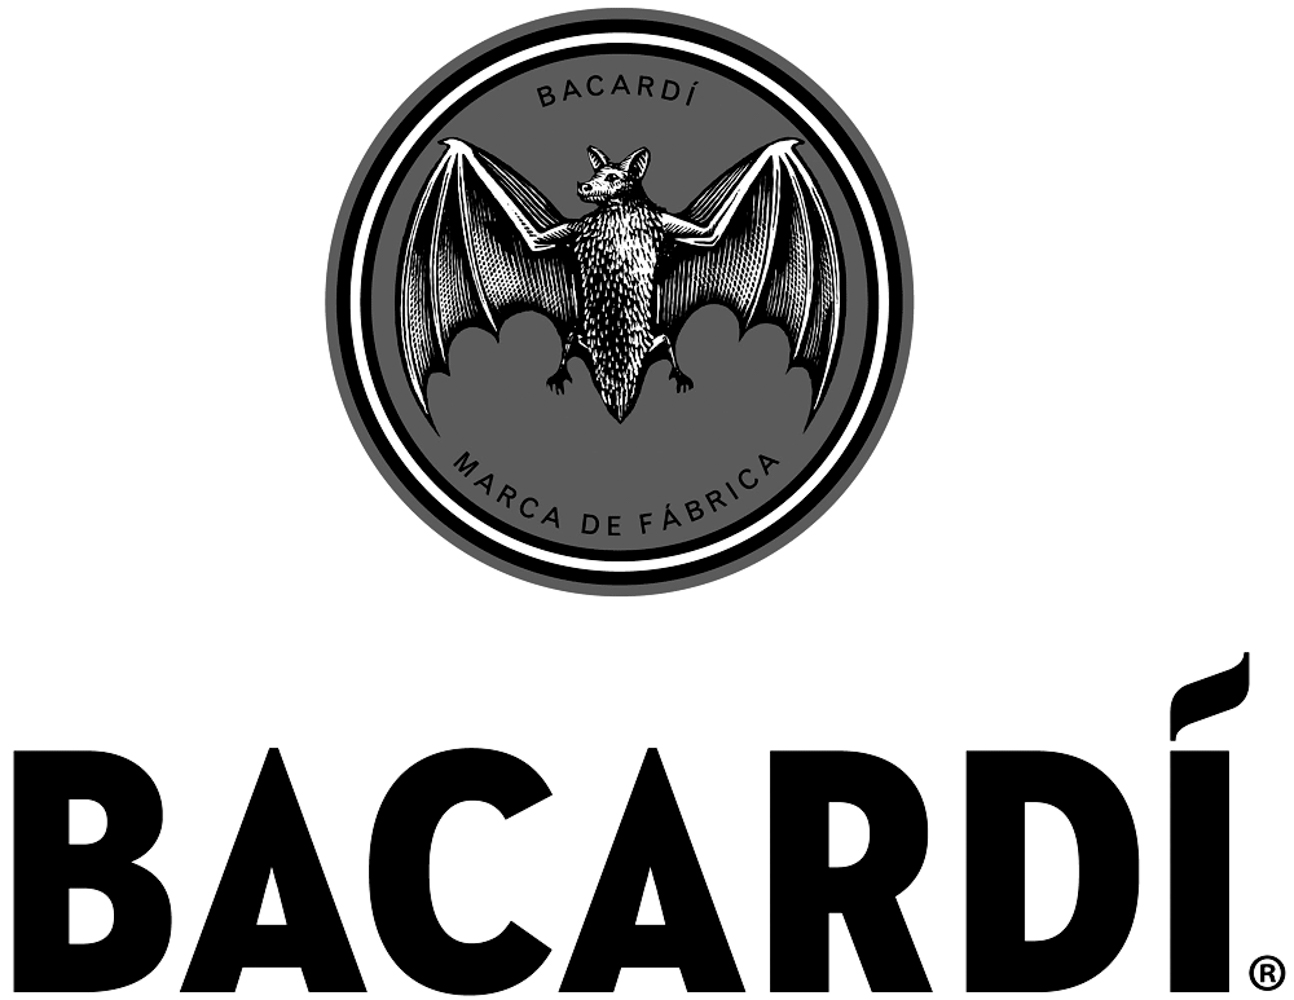 bacardi_logo_detailAuthority_Creative_Client_logojpg_Authority_Creative_Client_logojpg.jpg